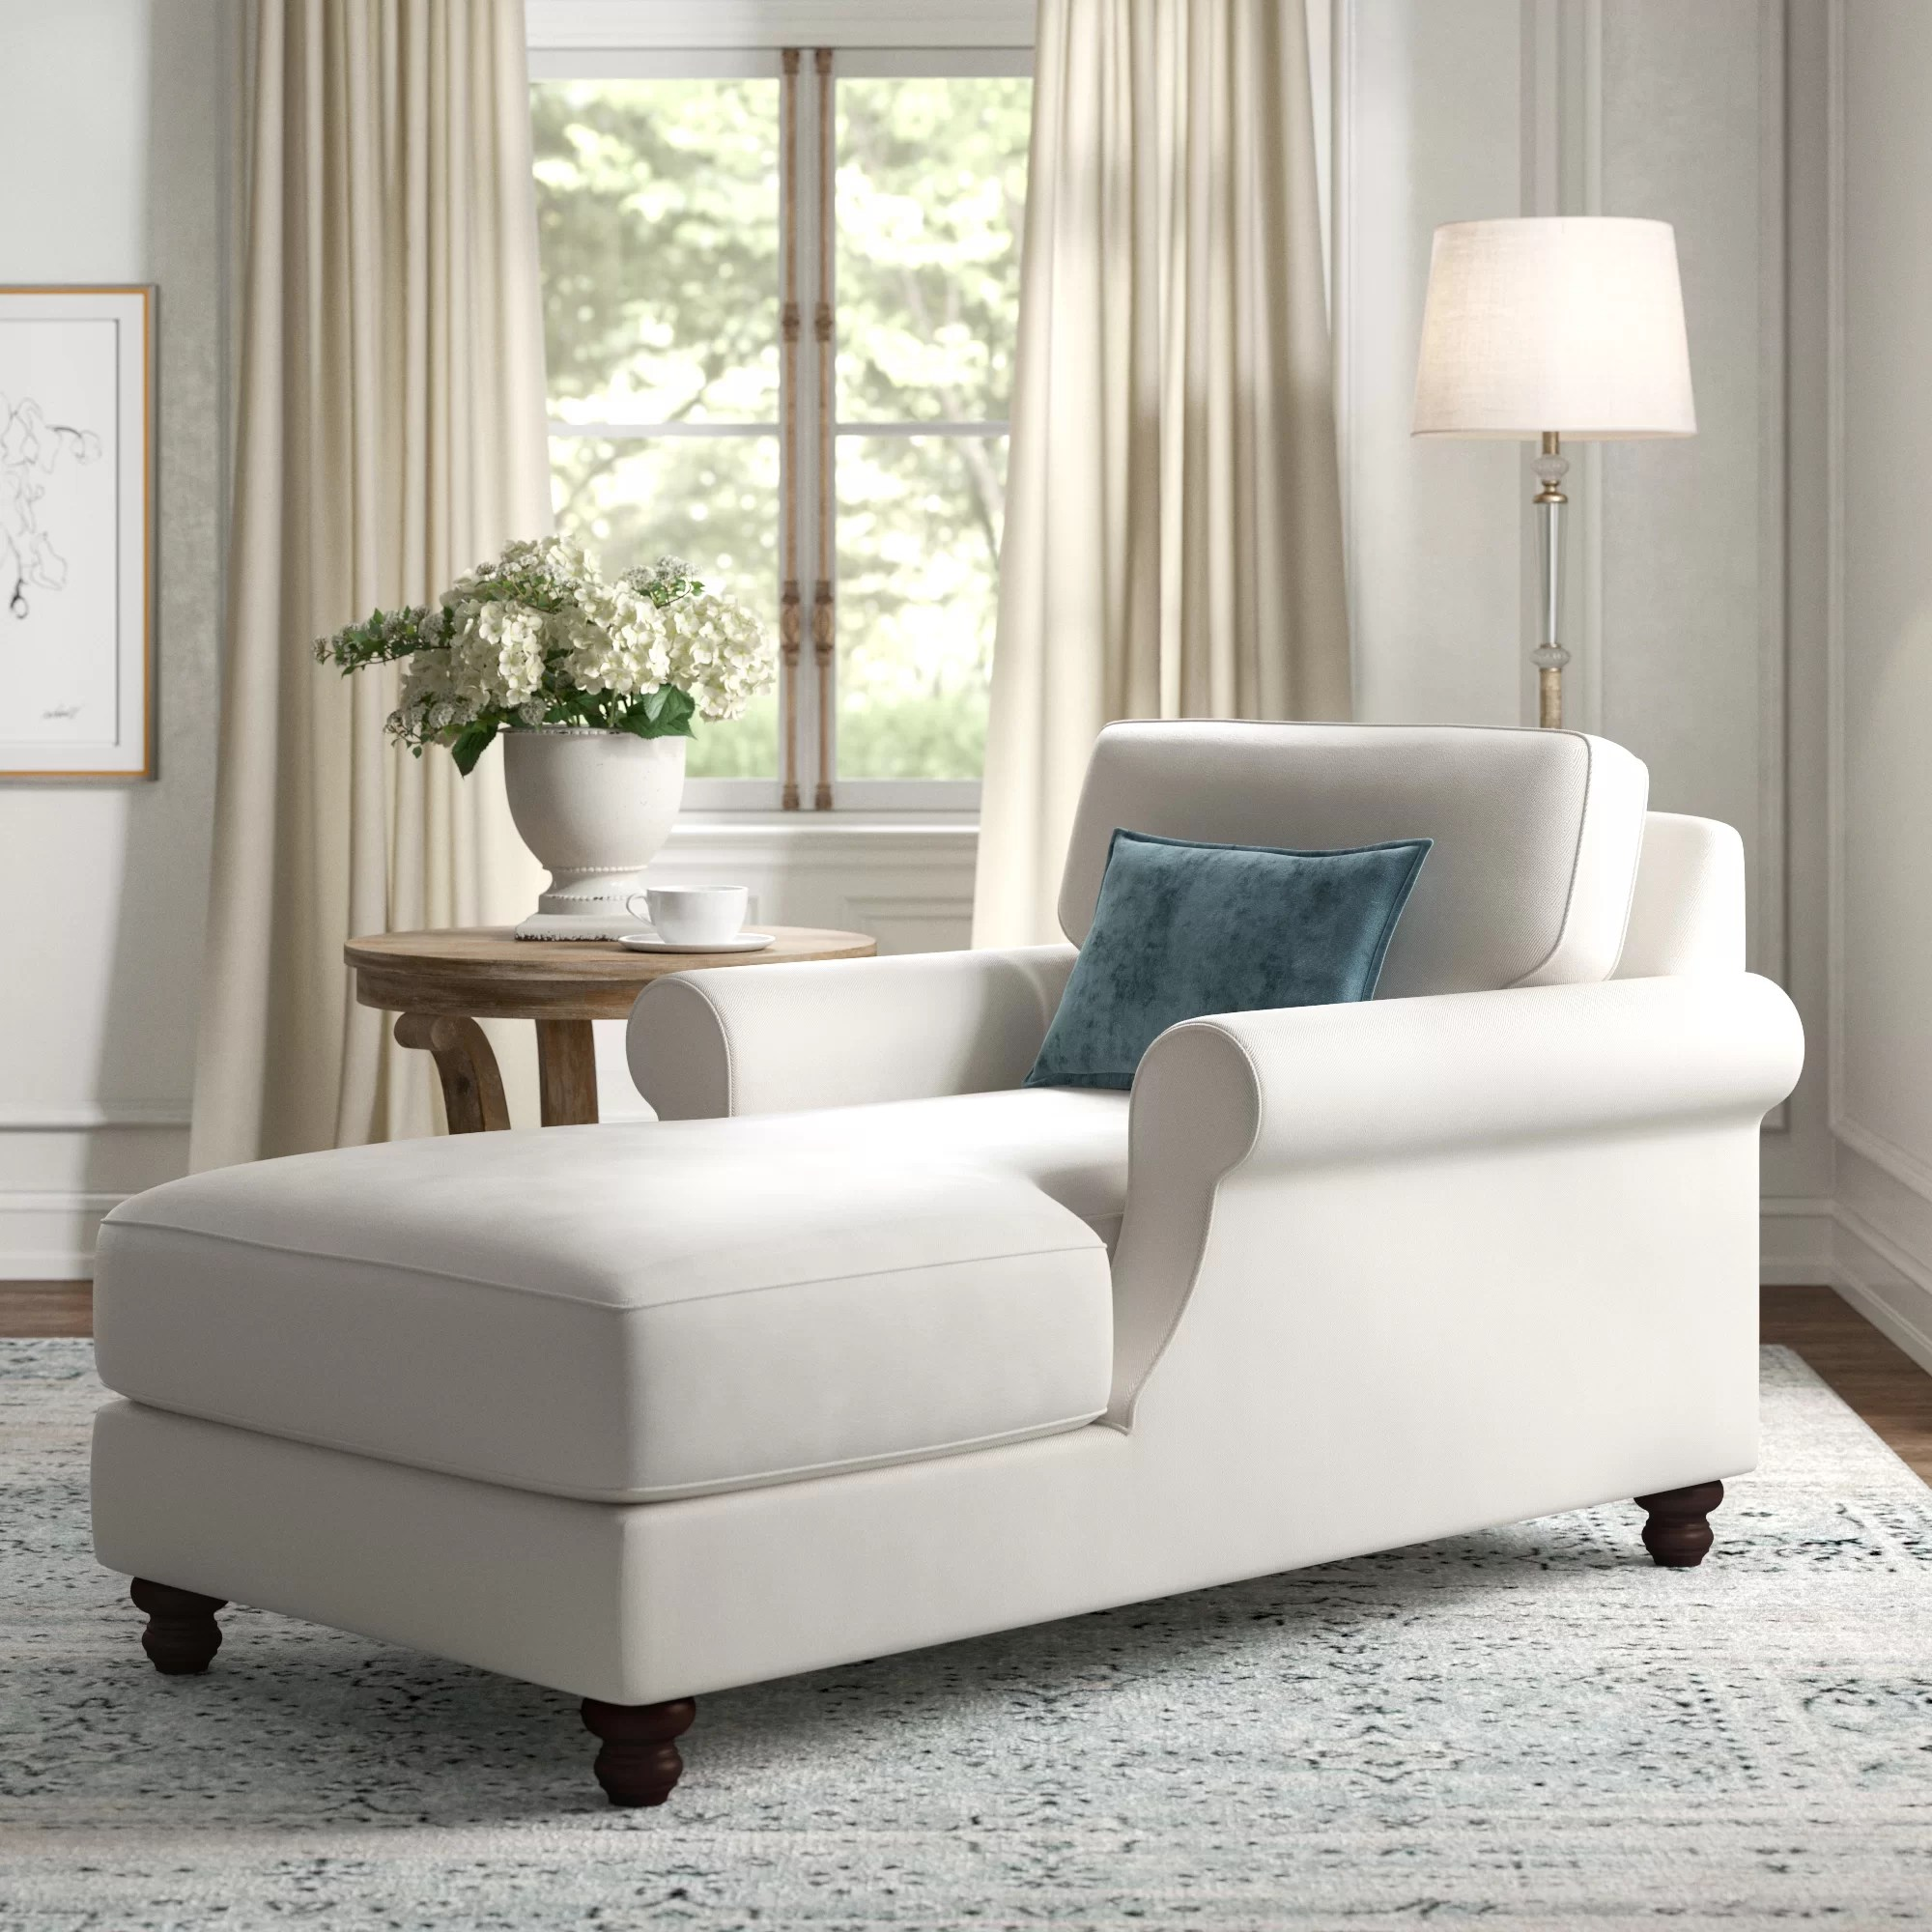 Kelly Clarkson Home Chaise Lounge Chairs You Ll Love In 2021 Wayfair